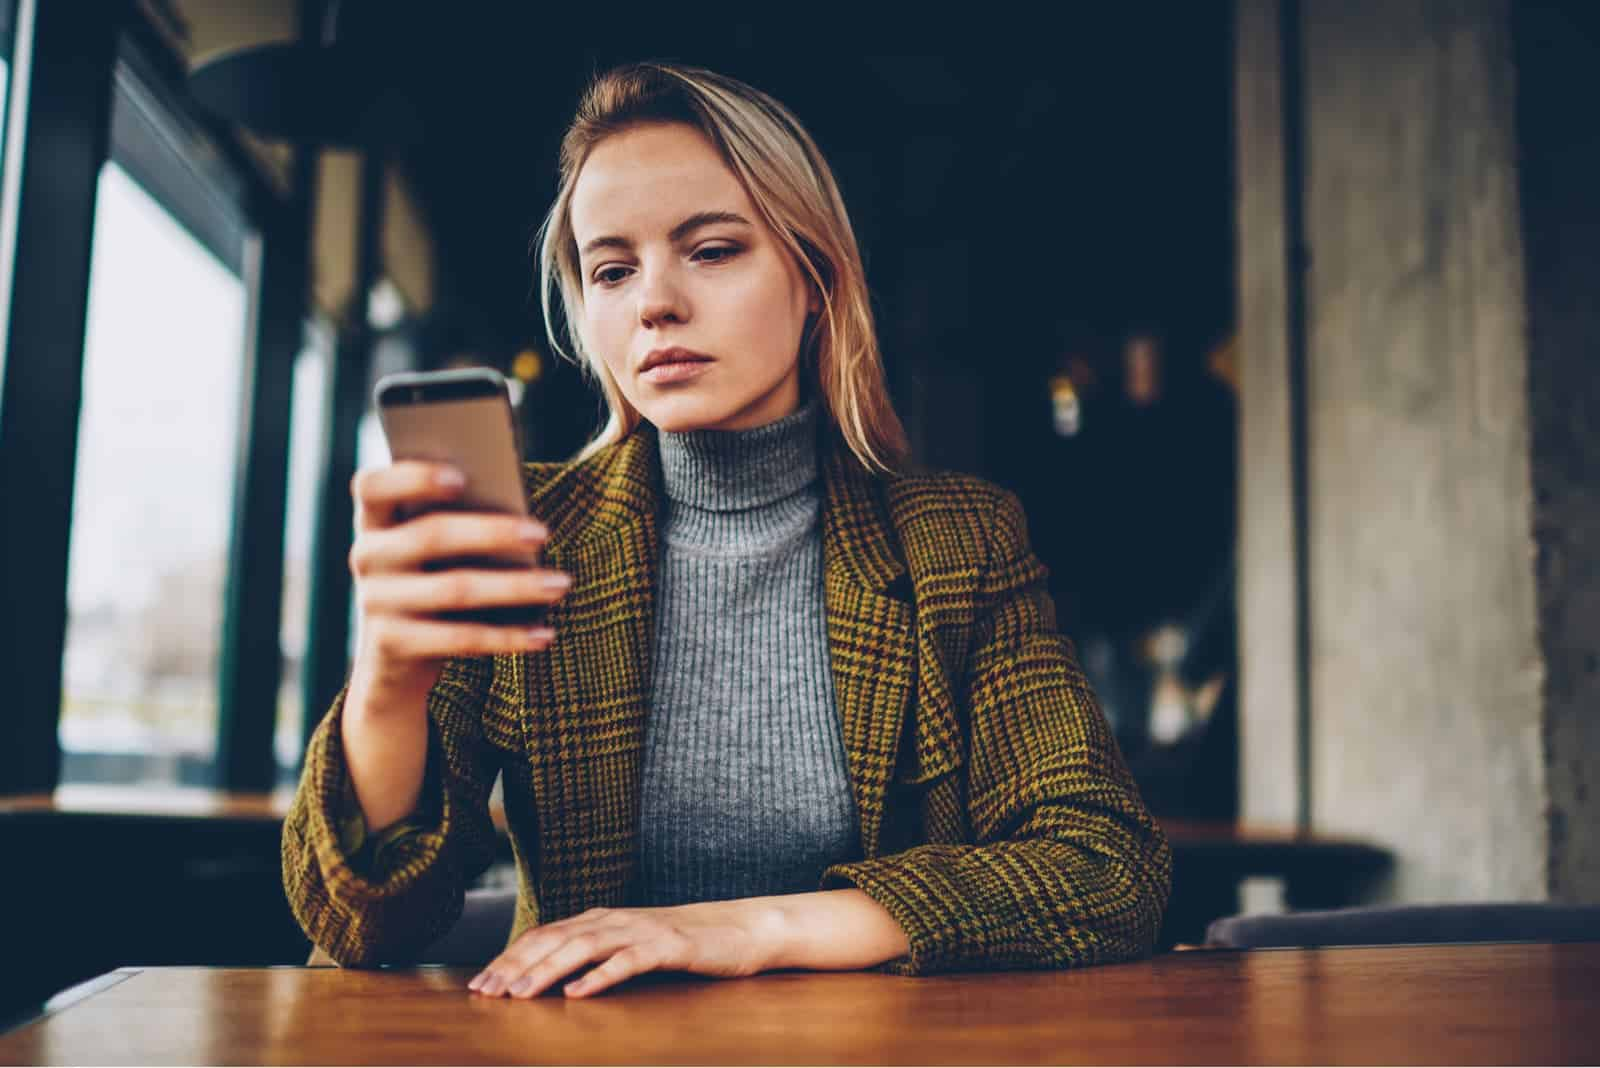 woman sitting by the table holding her phone